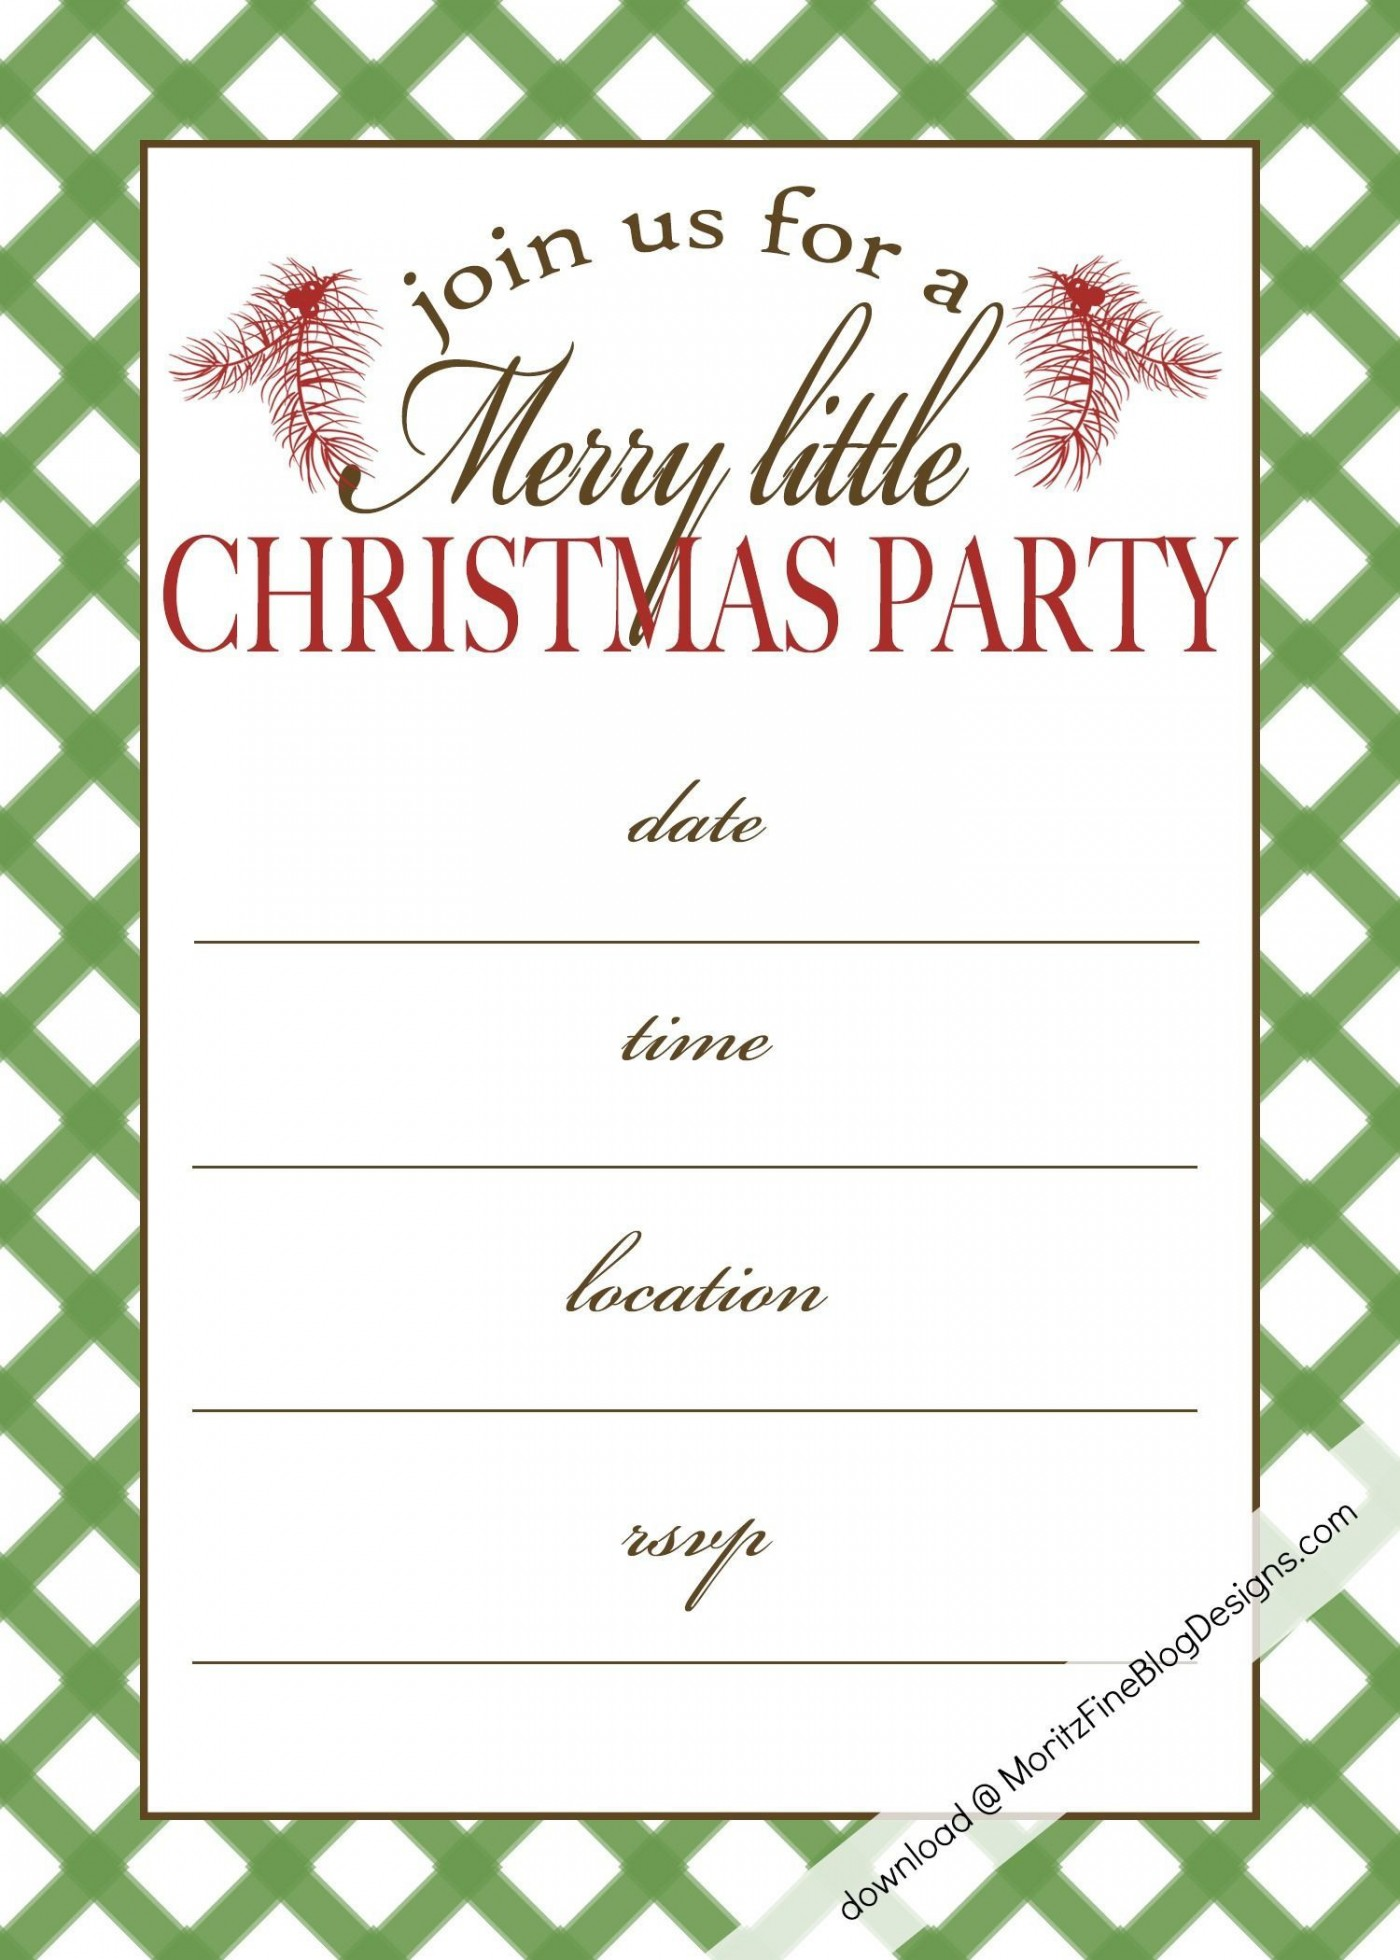 002 Awesome Xma Party Invite Template Free Photo  Holiday Invitation Word Download Christma1400